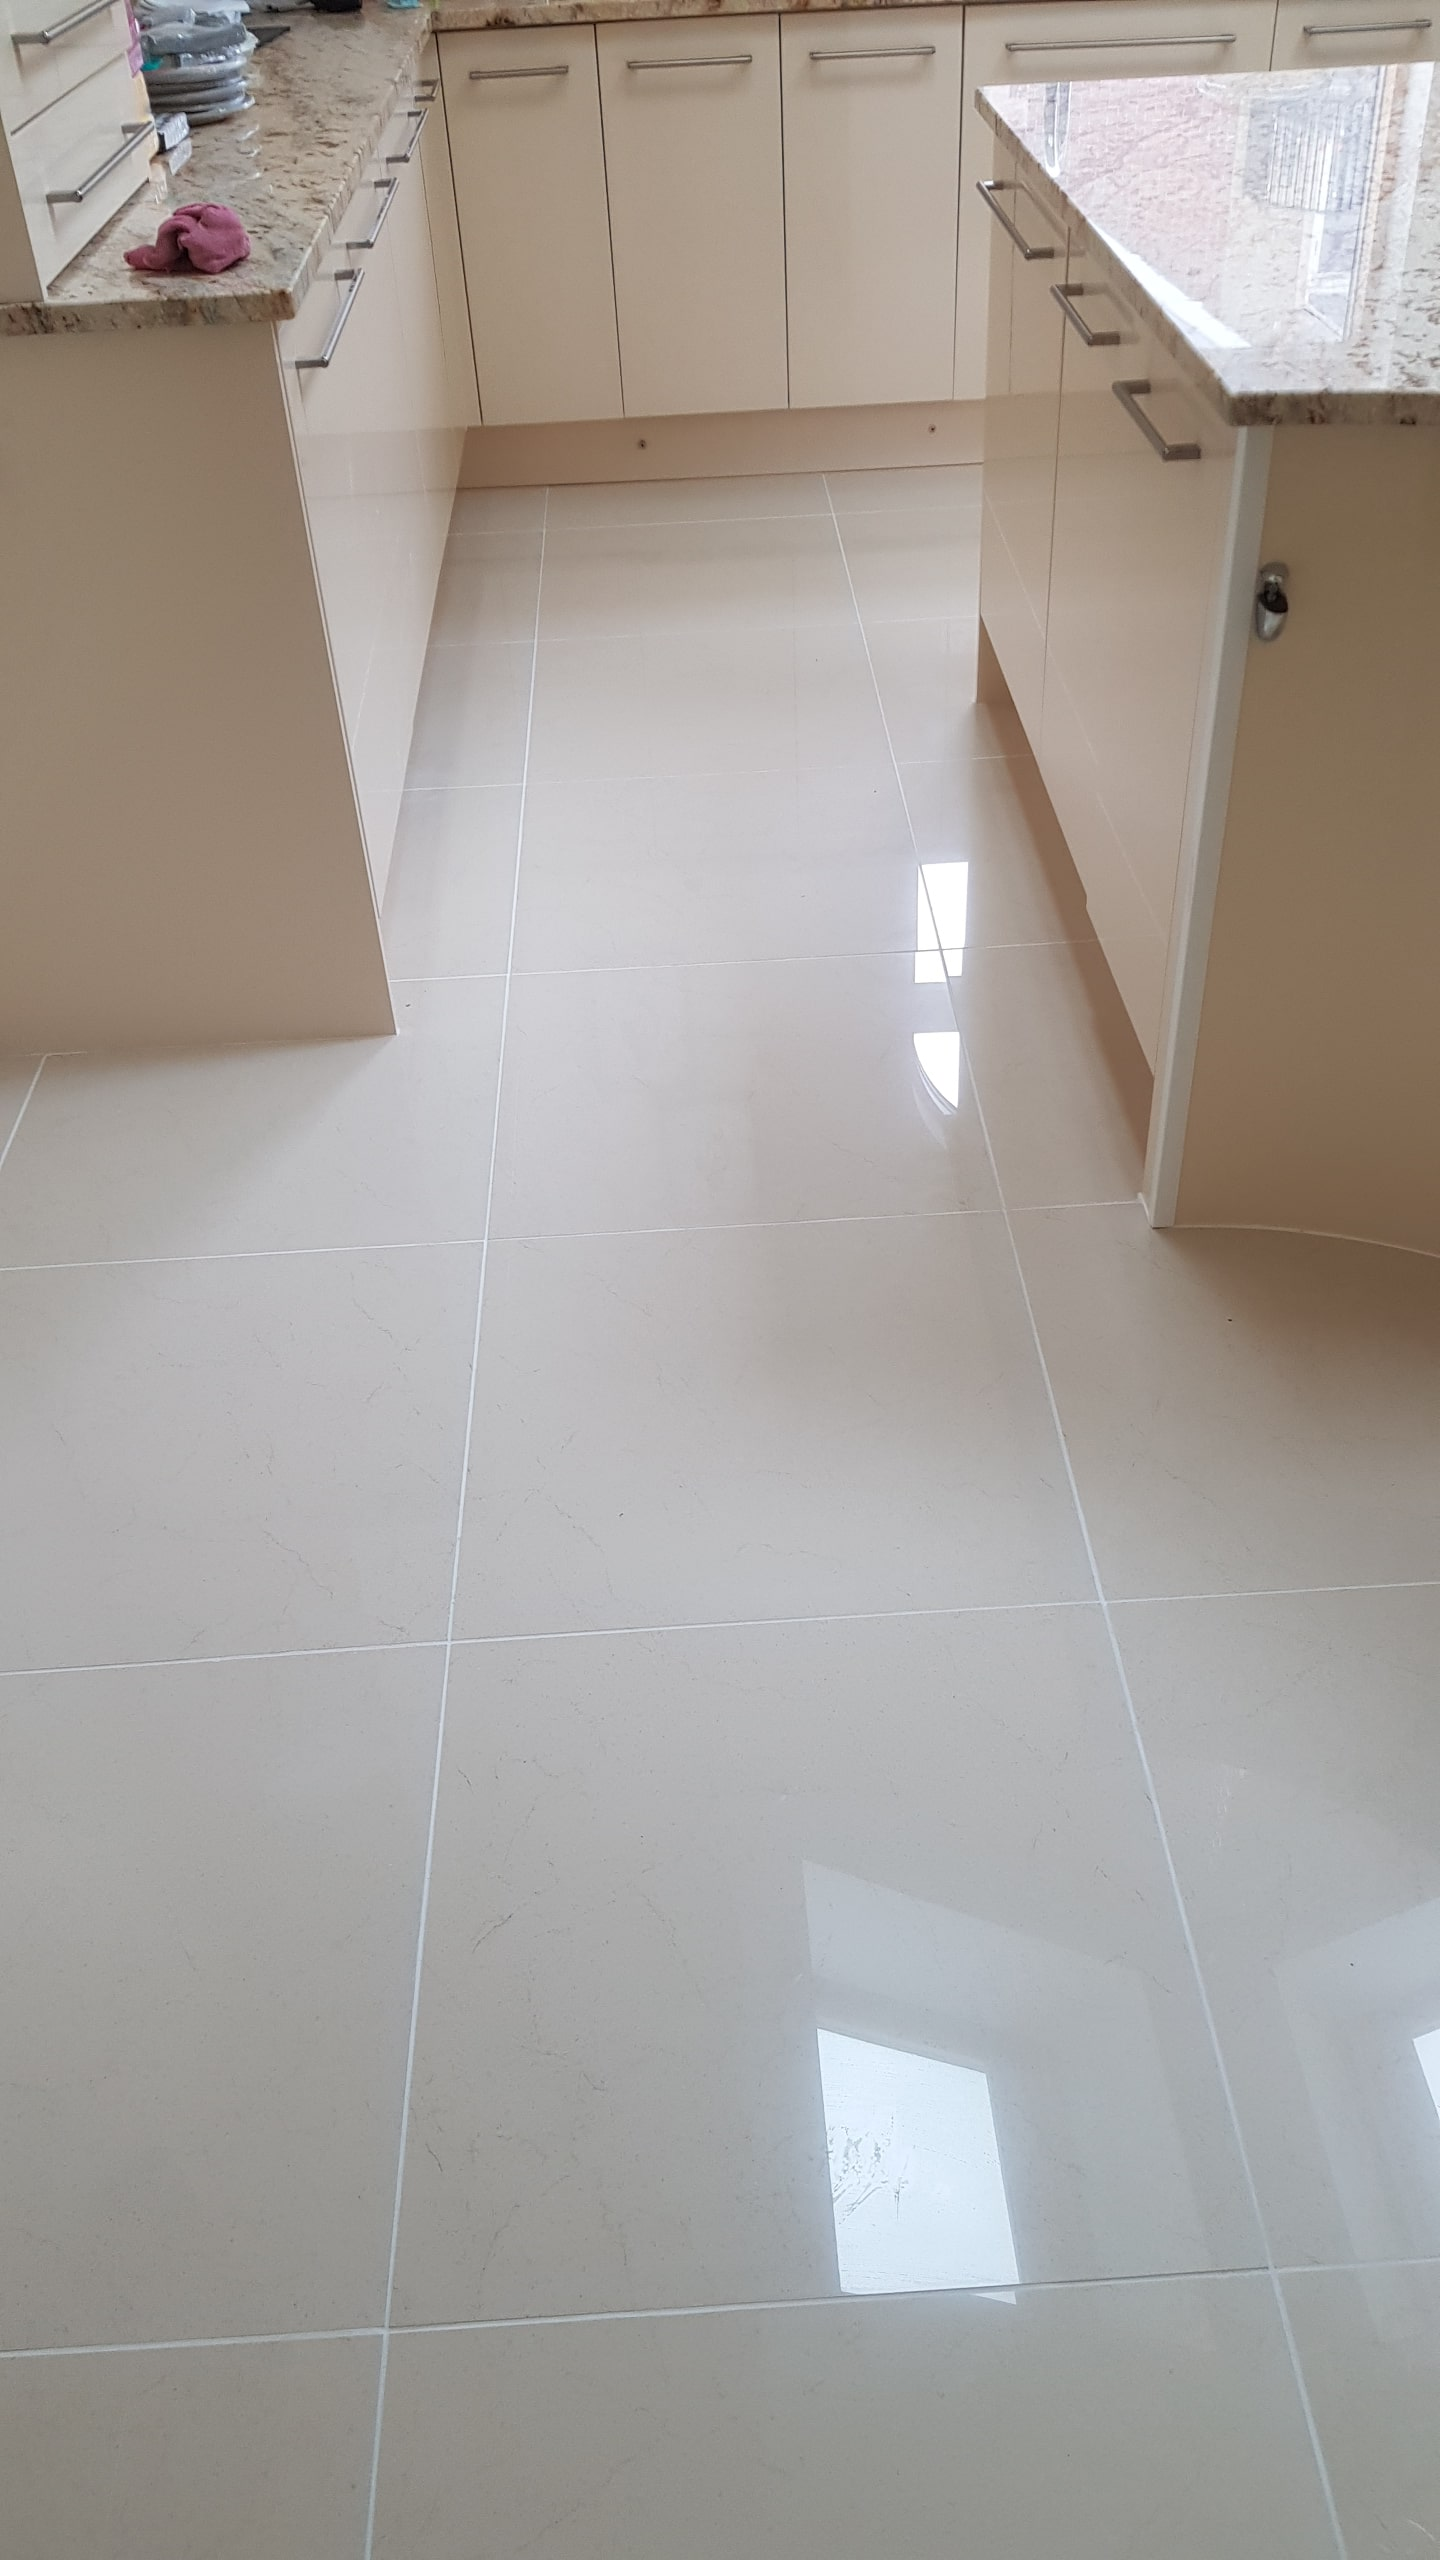 Porcelain Tiled Floor After Tile Replacement and Grout Colouring Sheffield